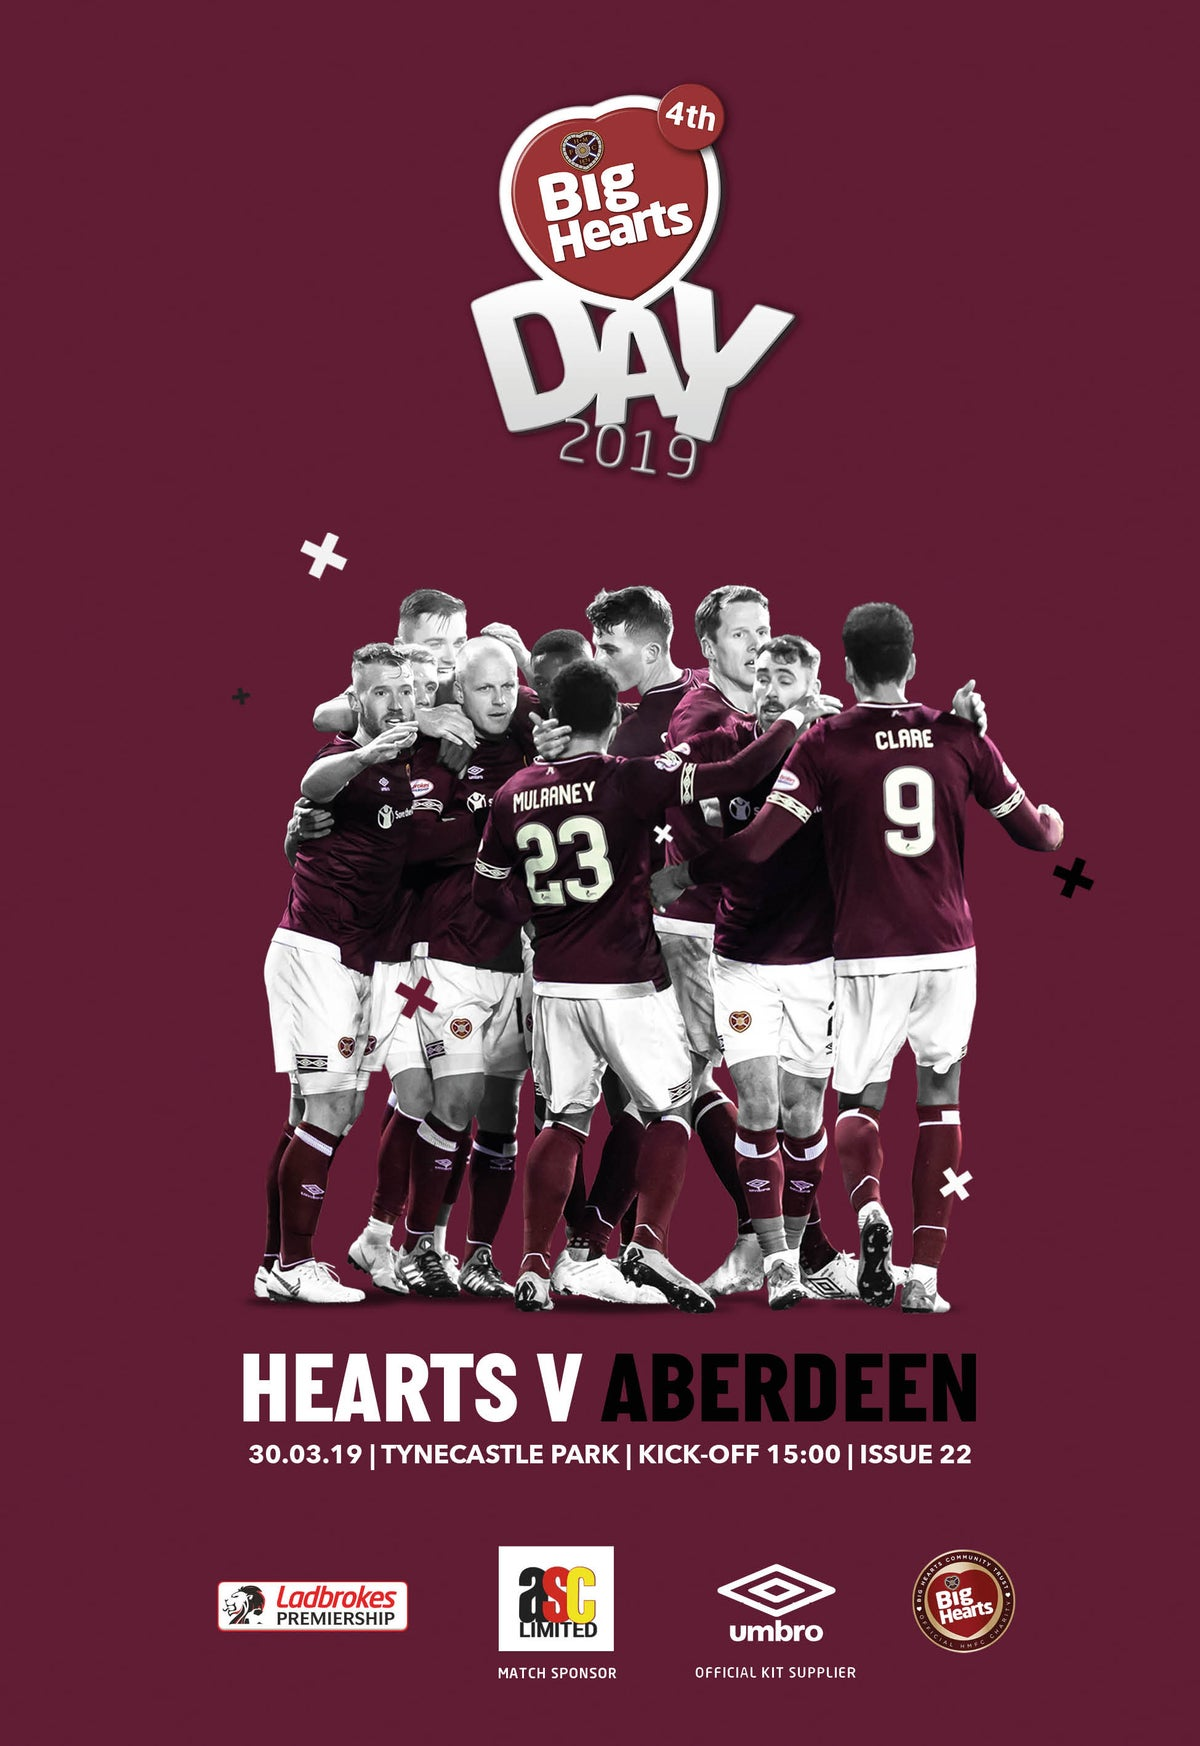 Image of Hearts v Aberdeen, 30th March 2019